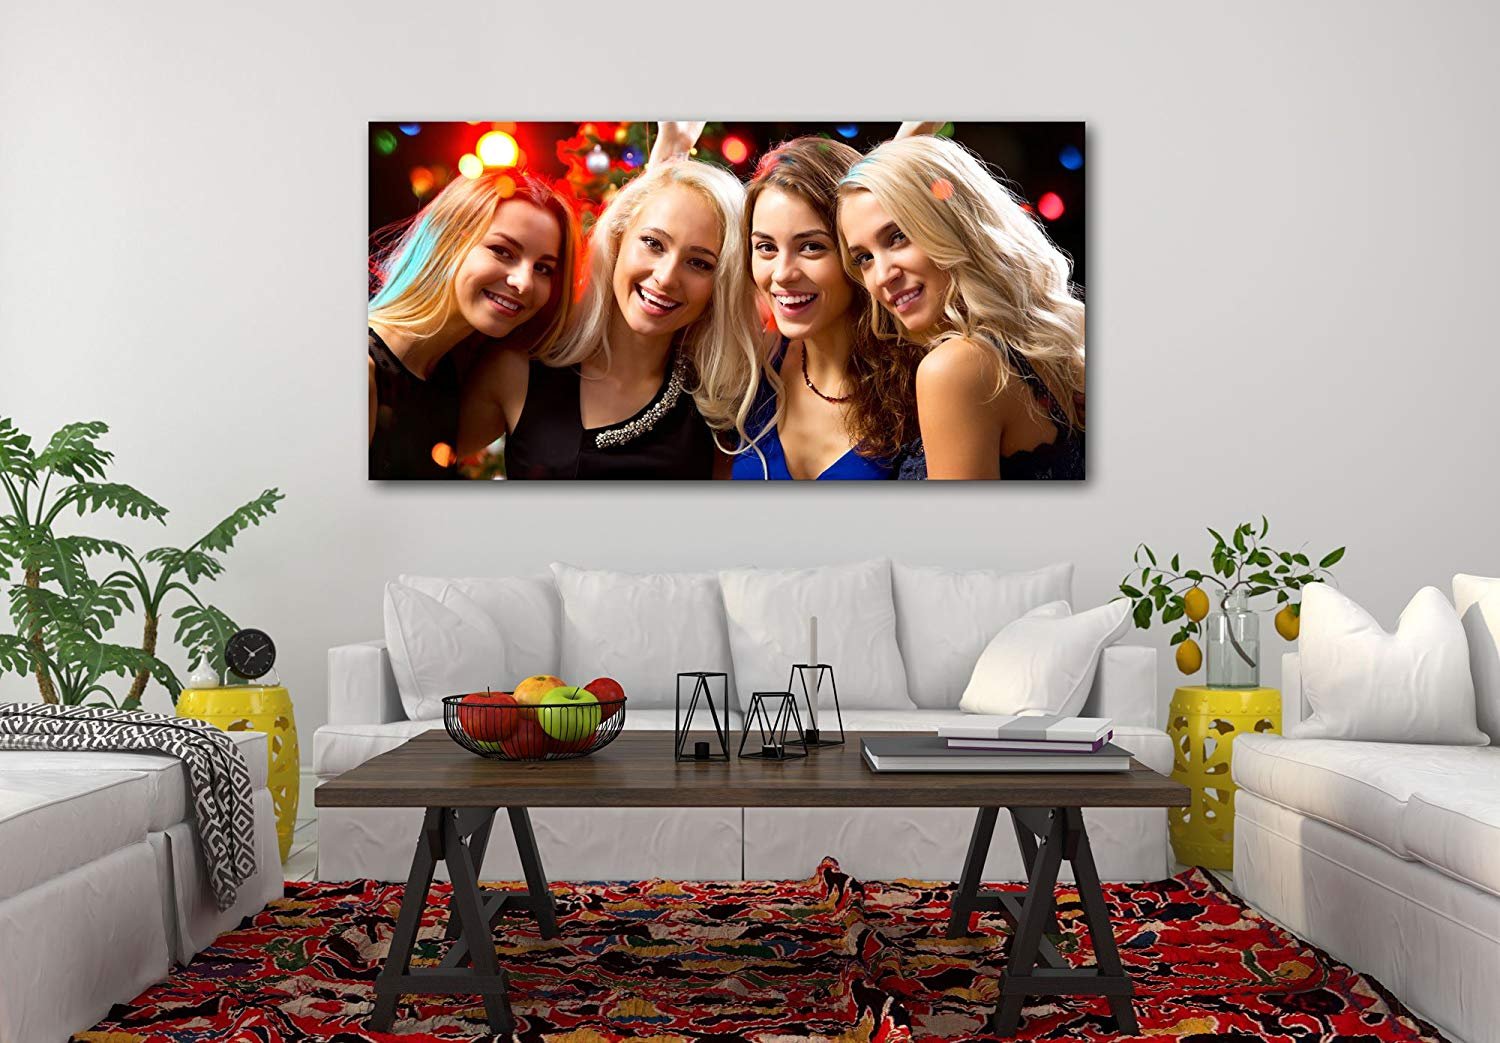 Your Photo On Canvas - One of The Best Perosonalized Gift Ideas for Her 2020